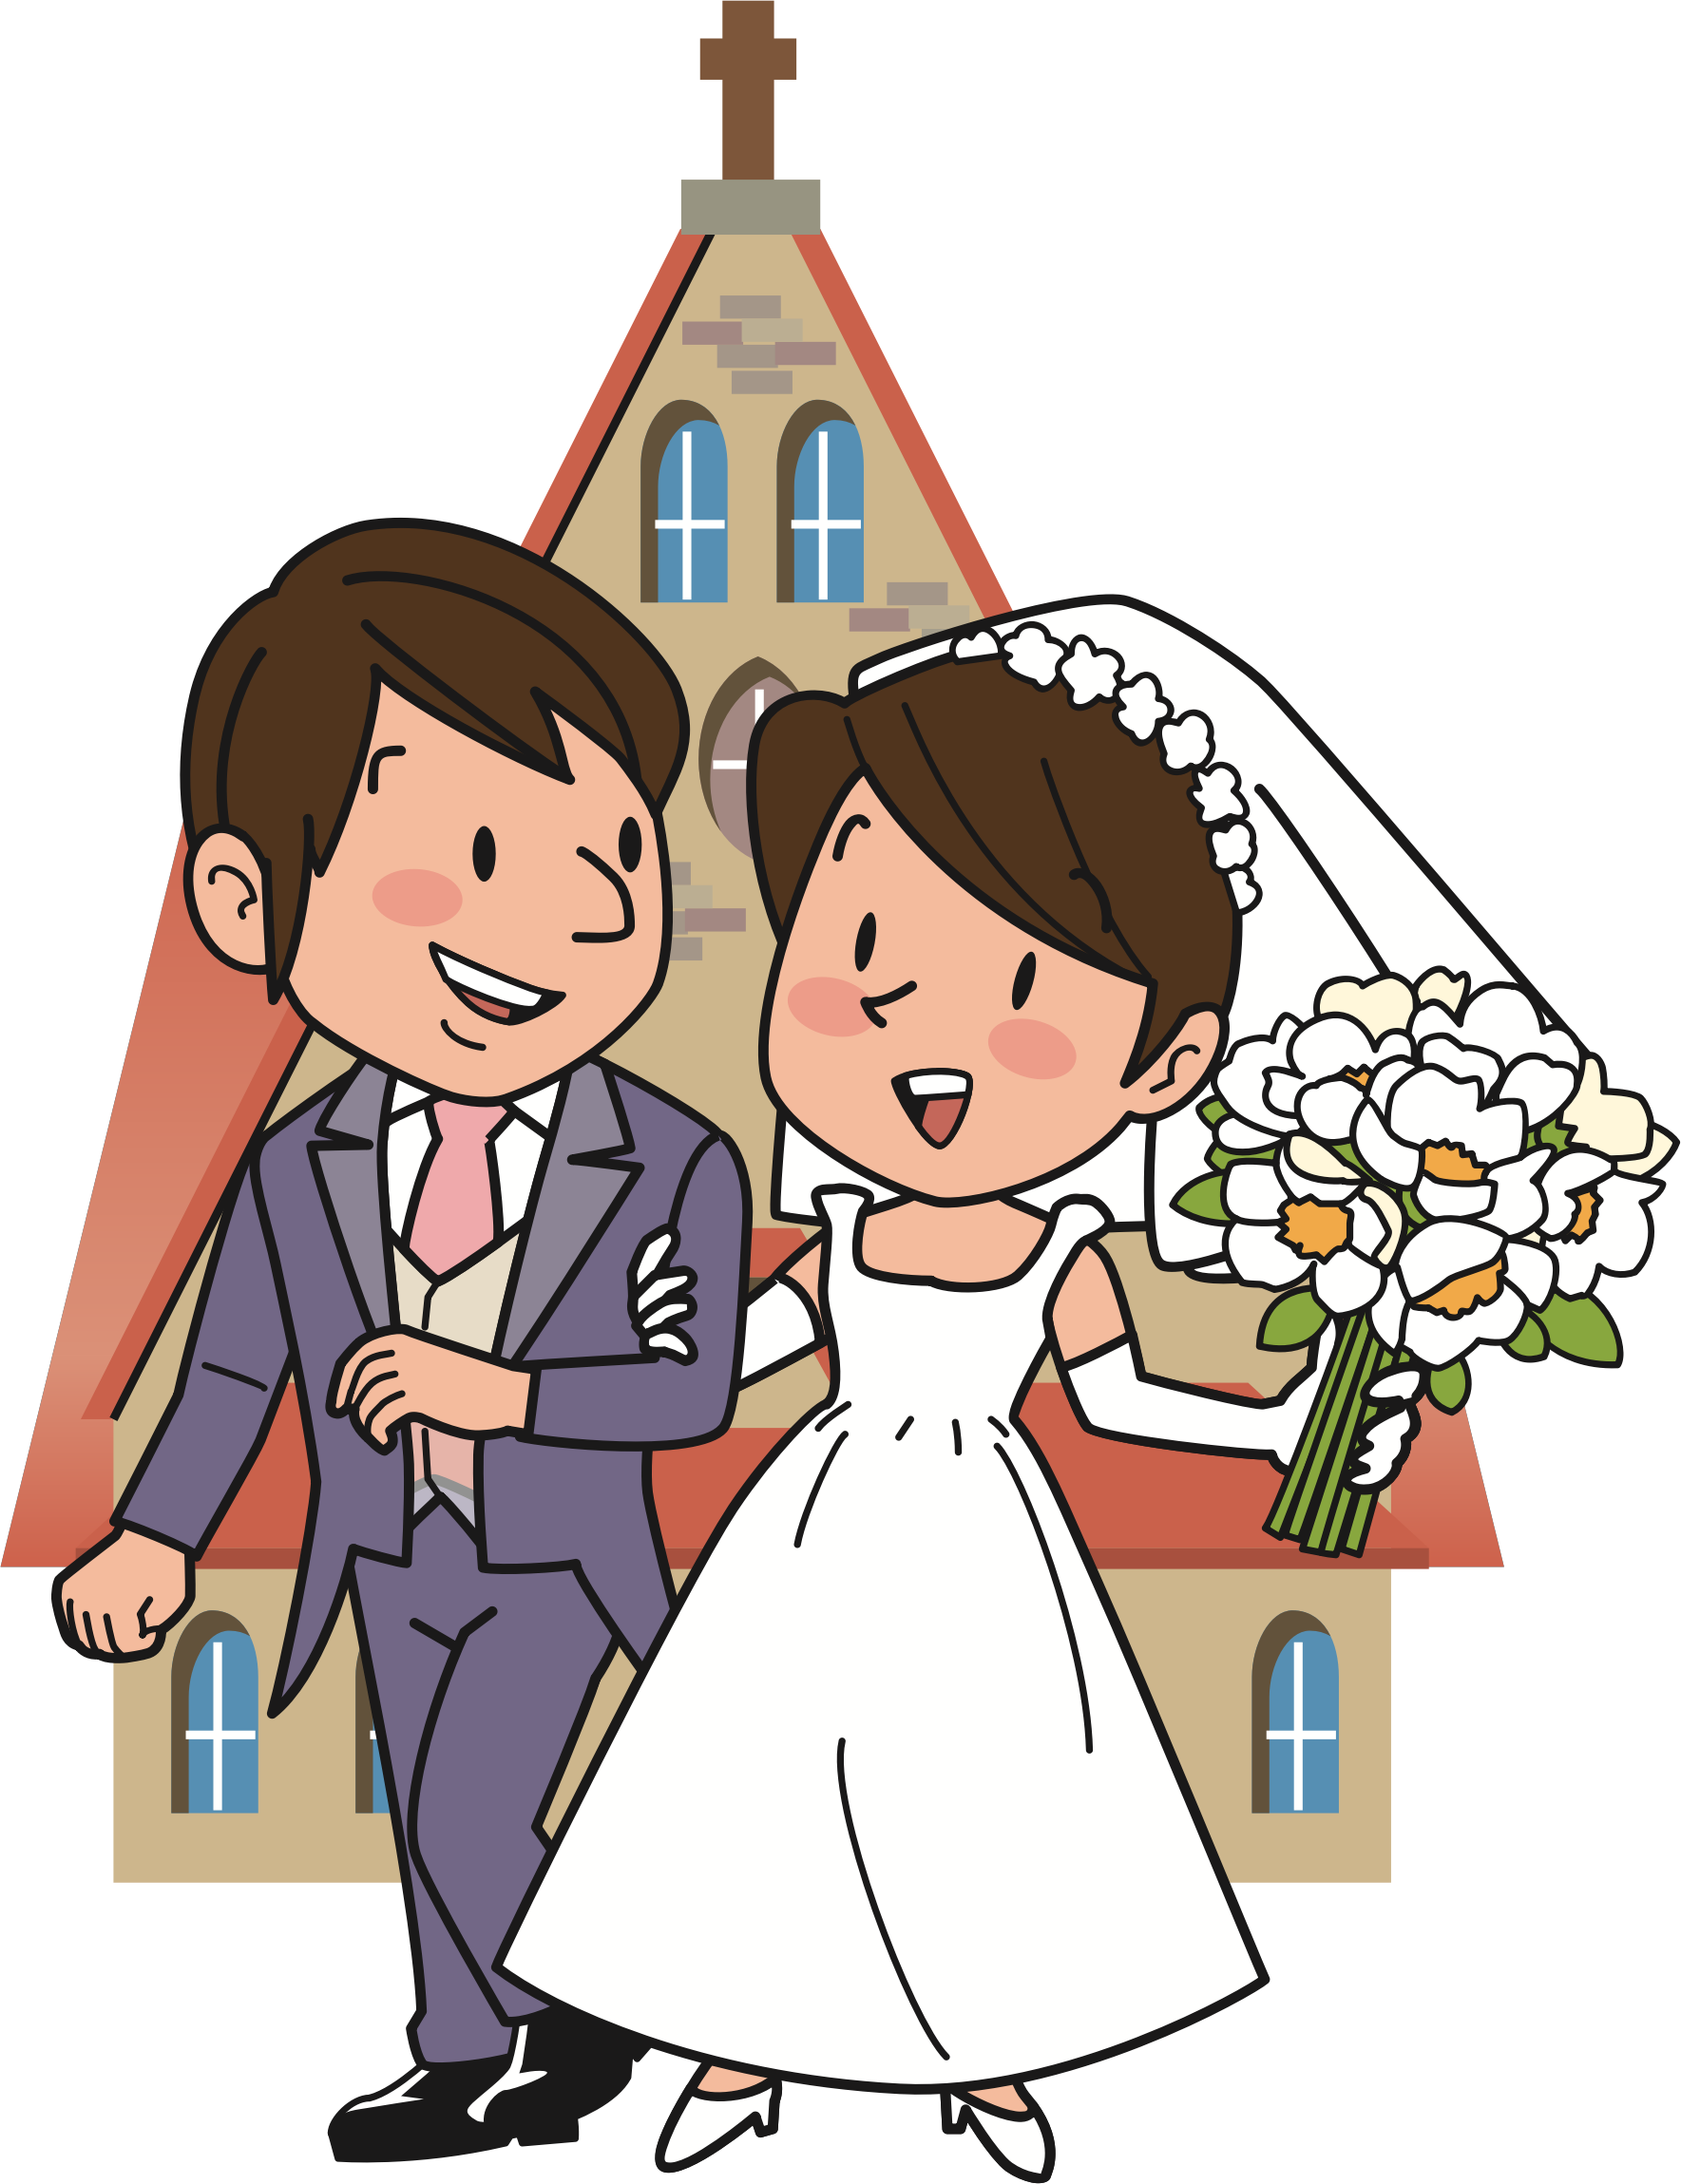 Marriage clipart child marriage, Picture #1615653 marriage.